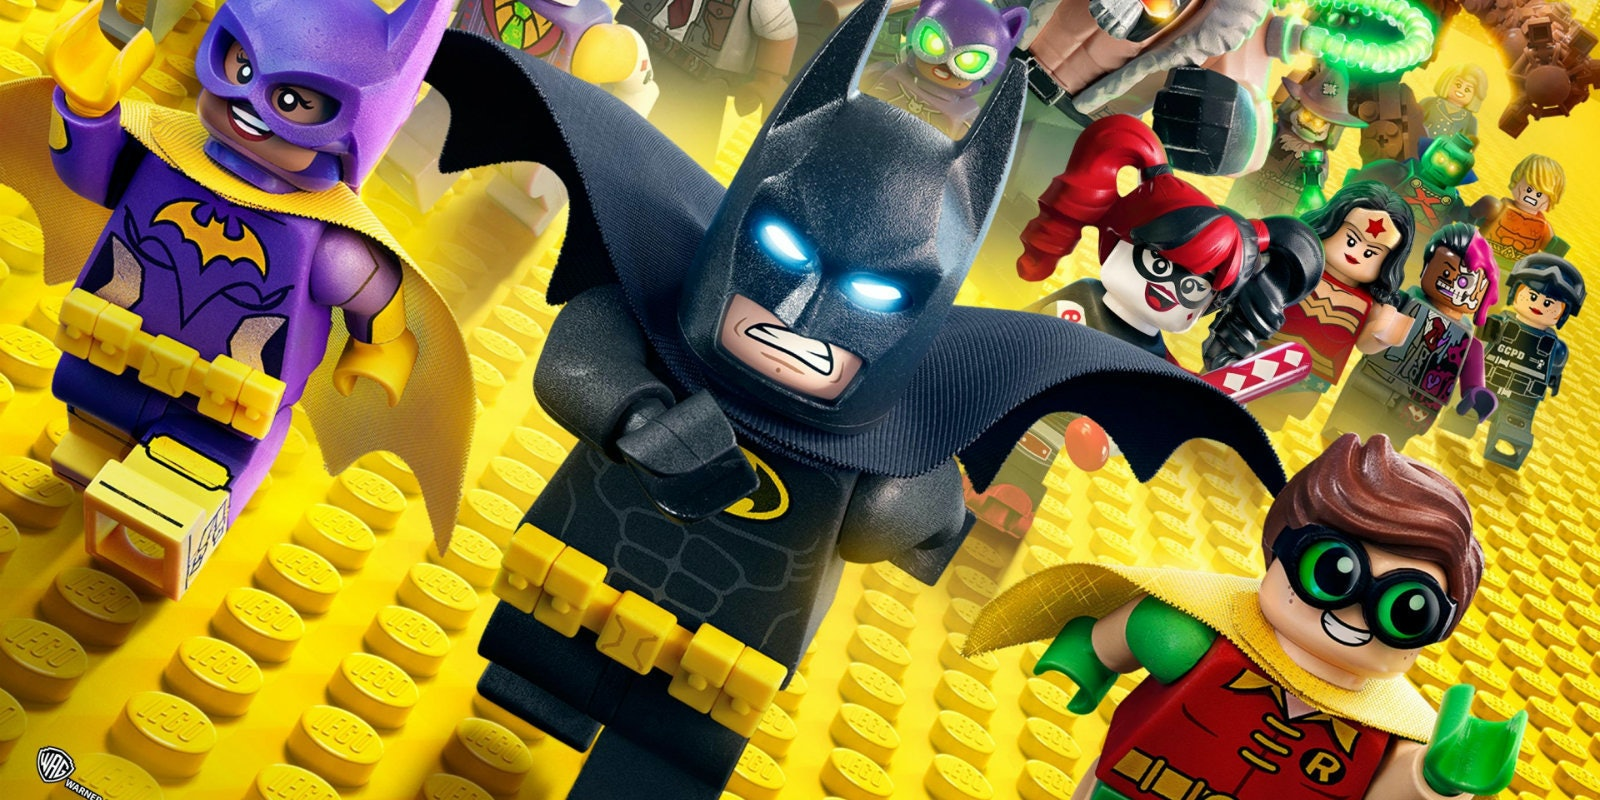 Lego Batman by Warner Bros Pictures and DC